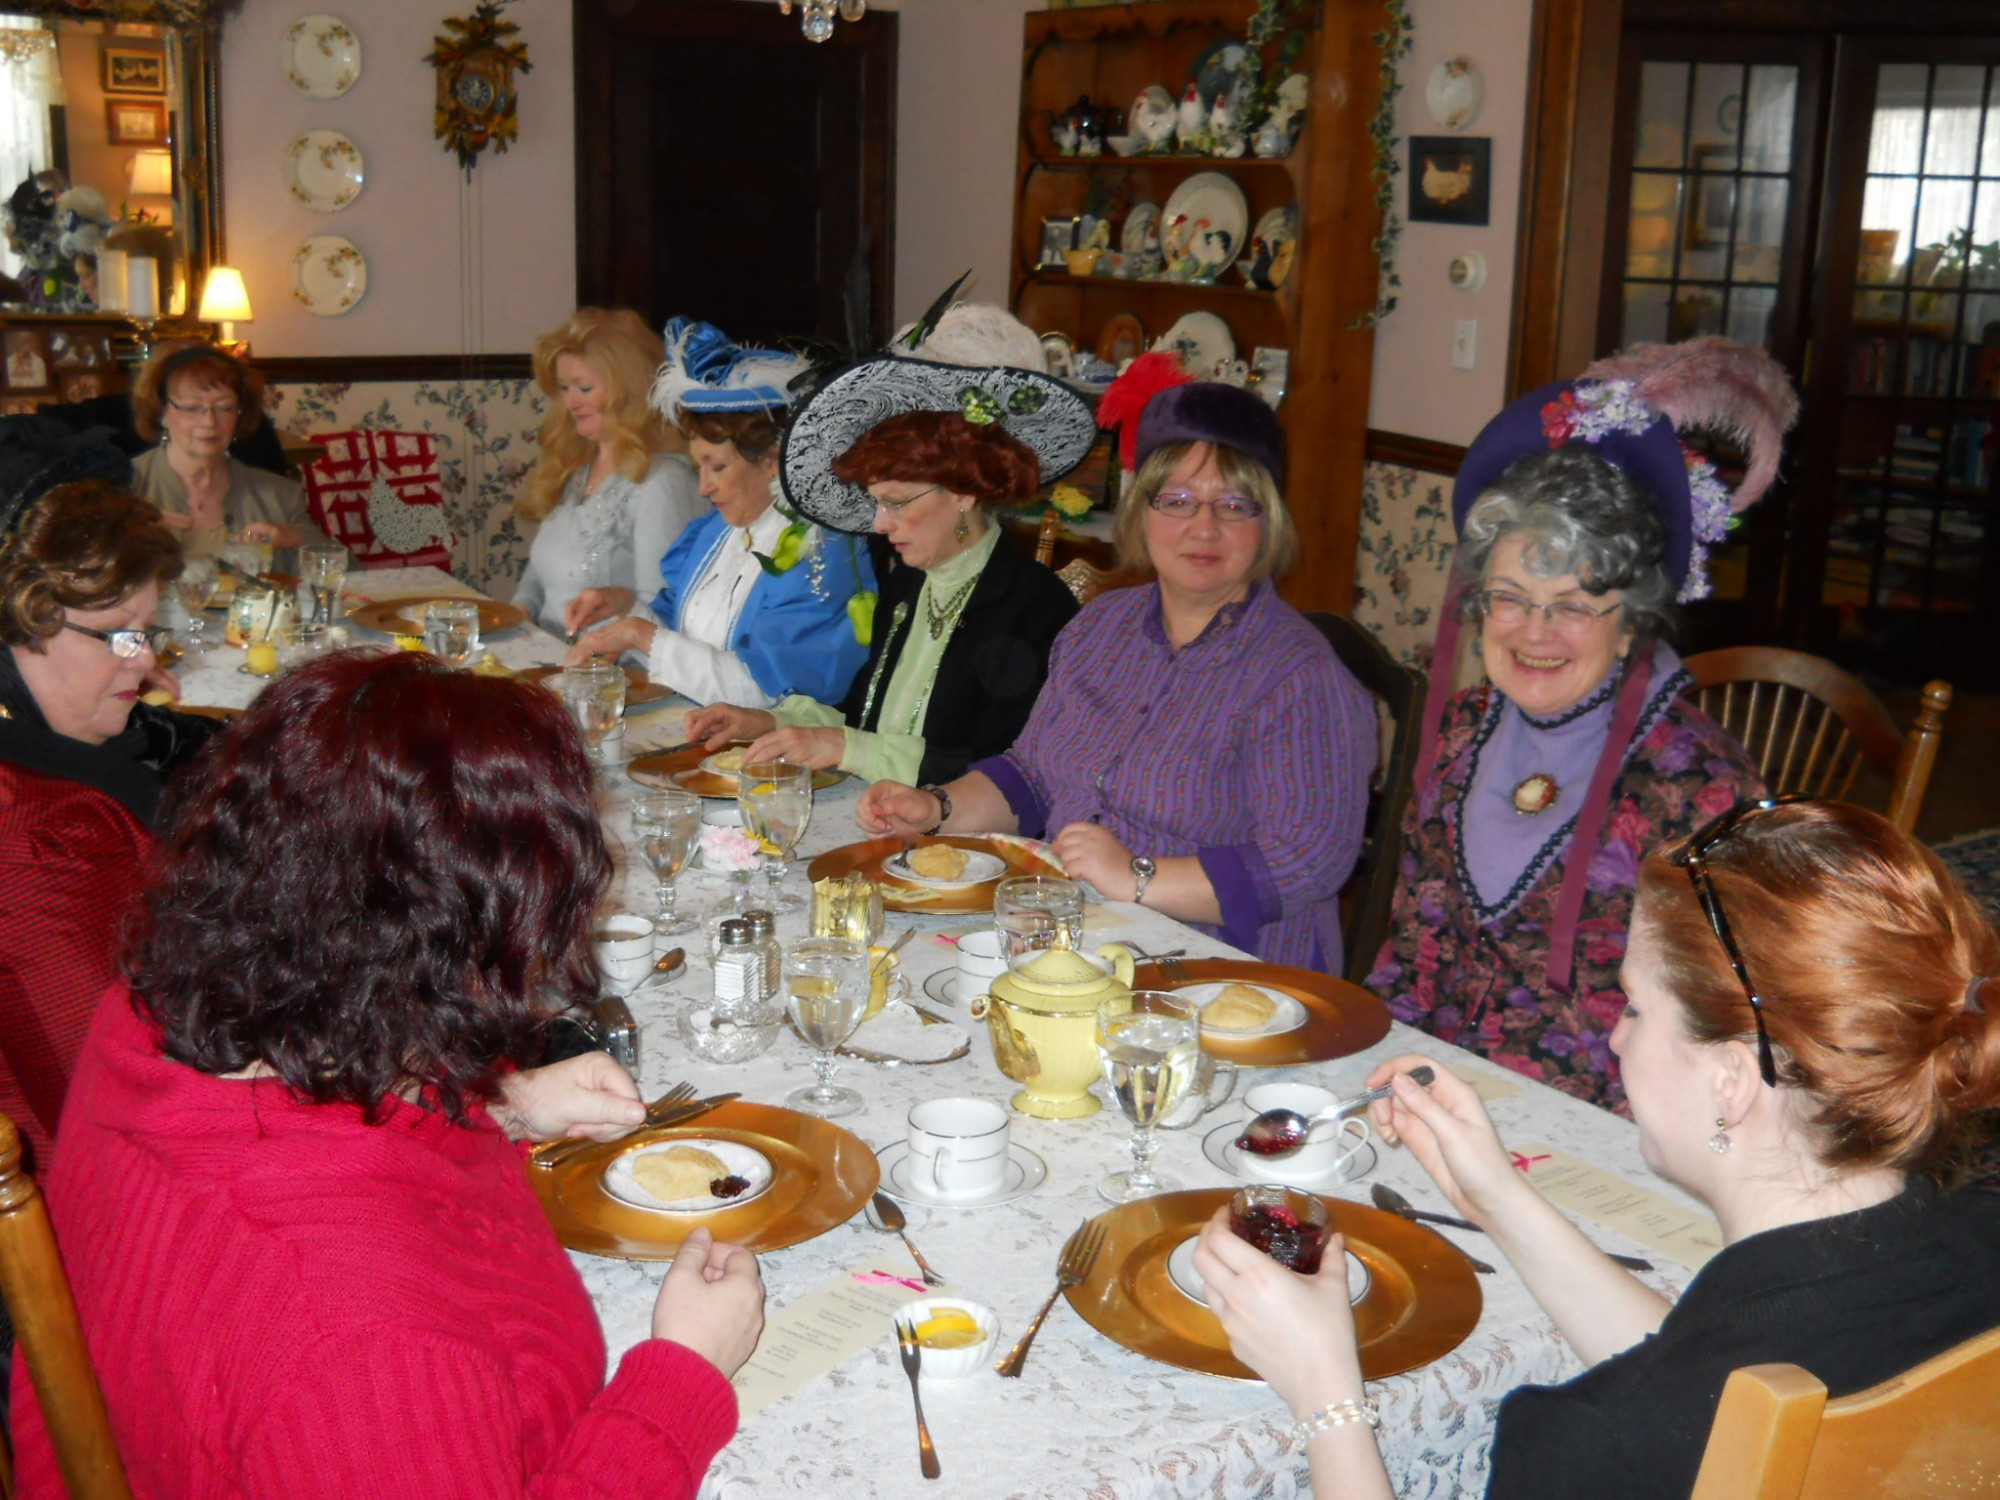 We had 12 for Tea. Our guests enjoyed, scones, tea sandwiches and several other goodie, of course Tea.